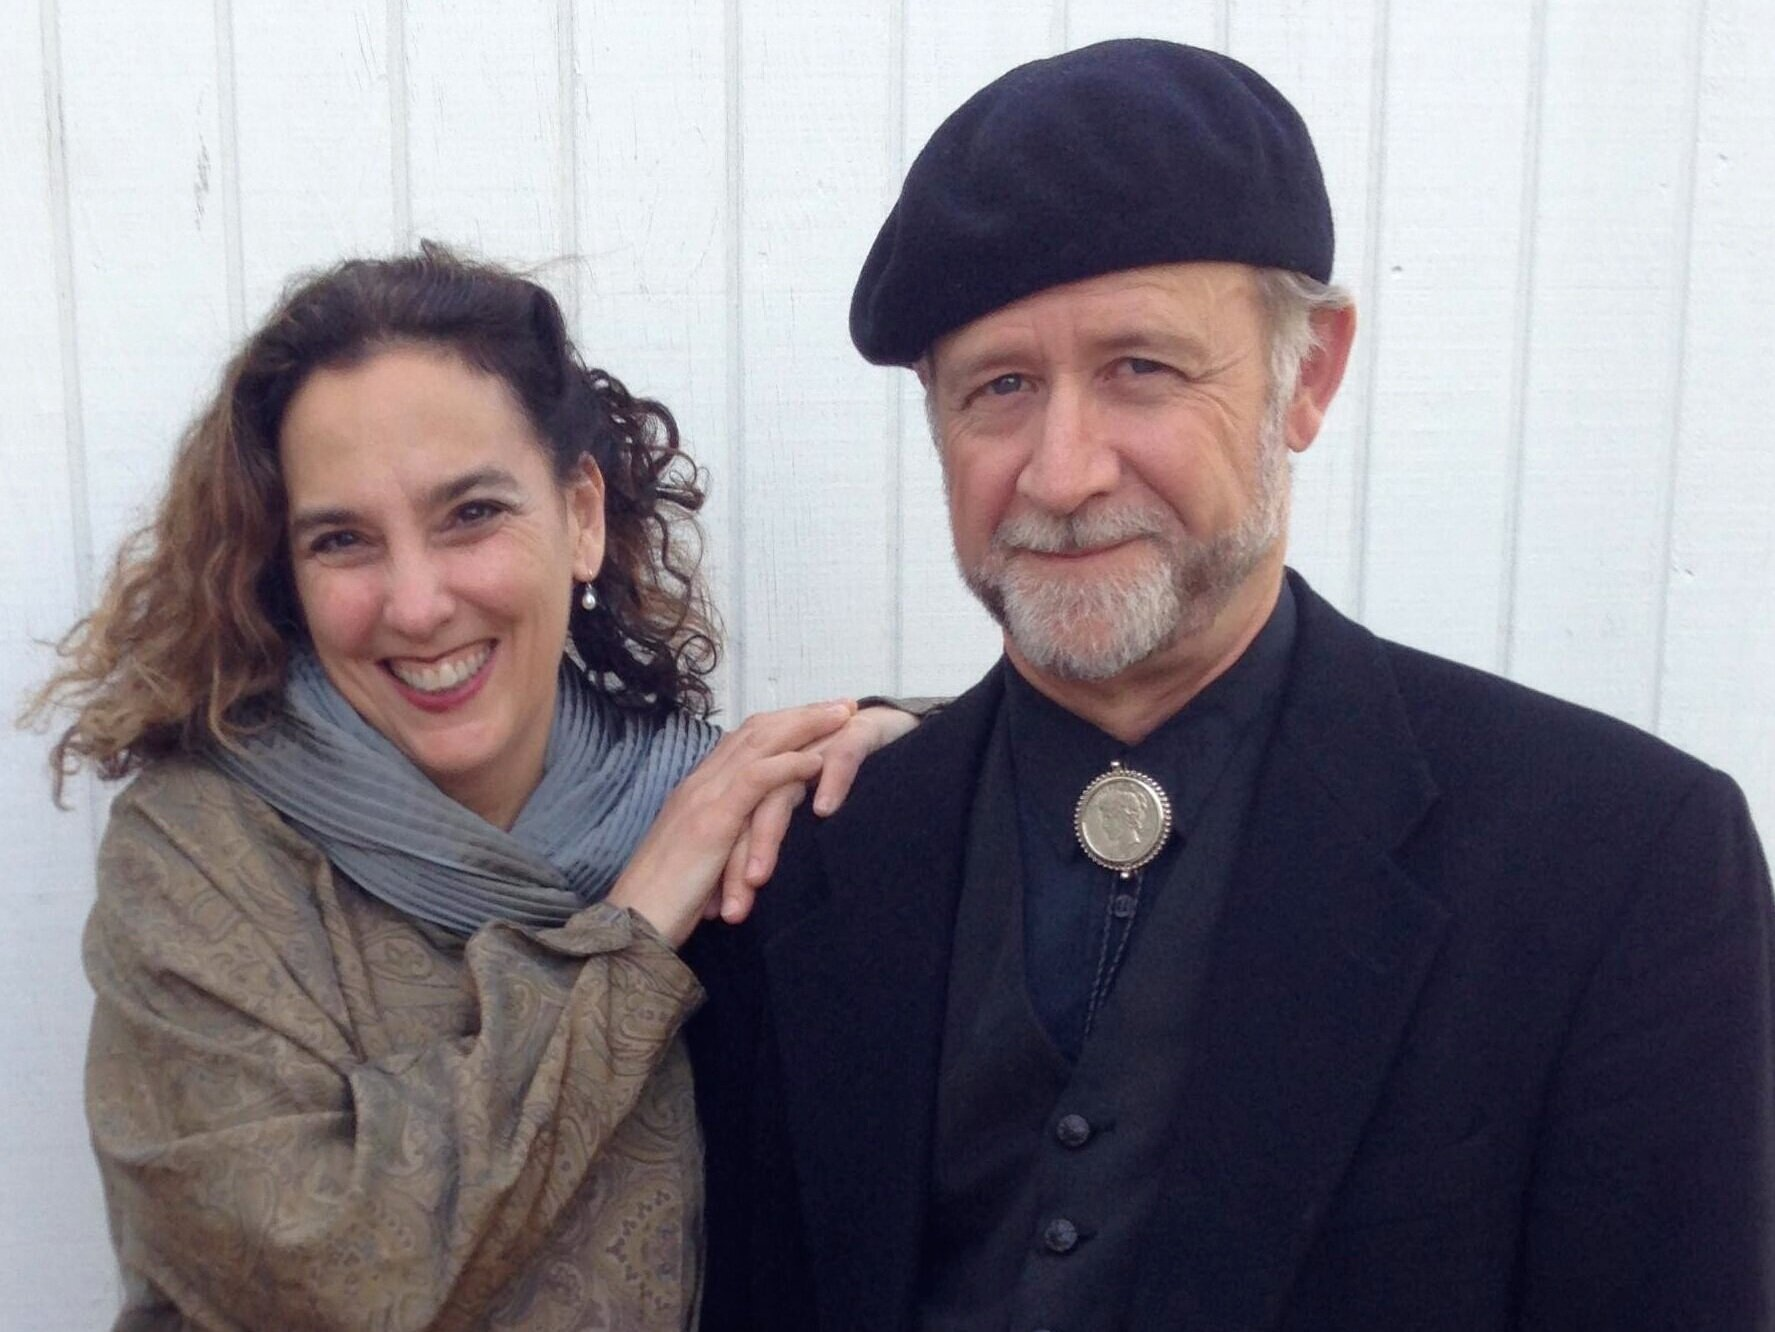 Mimi and John - have been collaborating as writers, teachers and editors for over a decade. As teachers, they'll help you shape your writing project and improve your technique. As editors, they'll help you make your writing as compelling on the page as it is in your imagination.